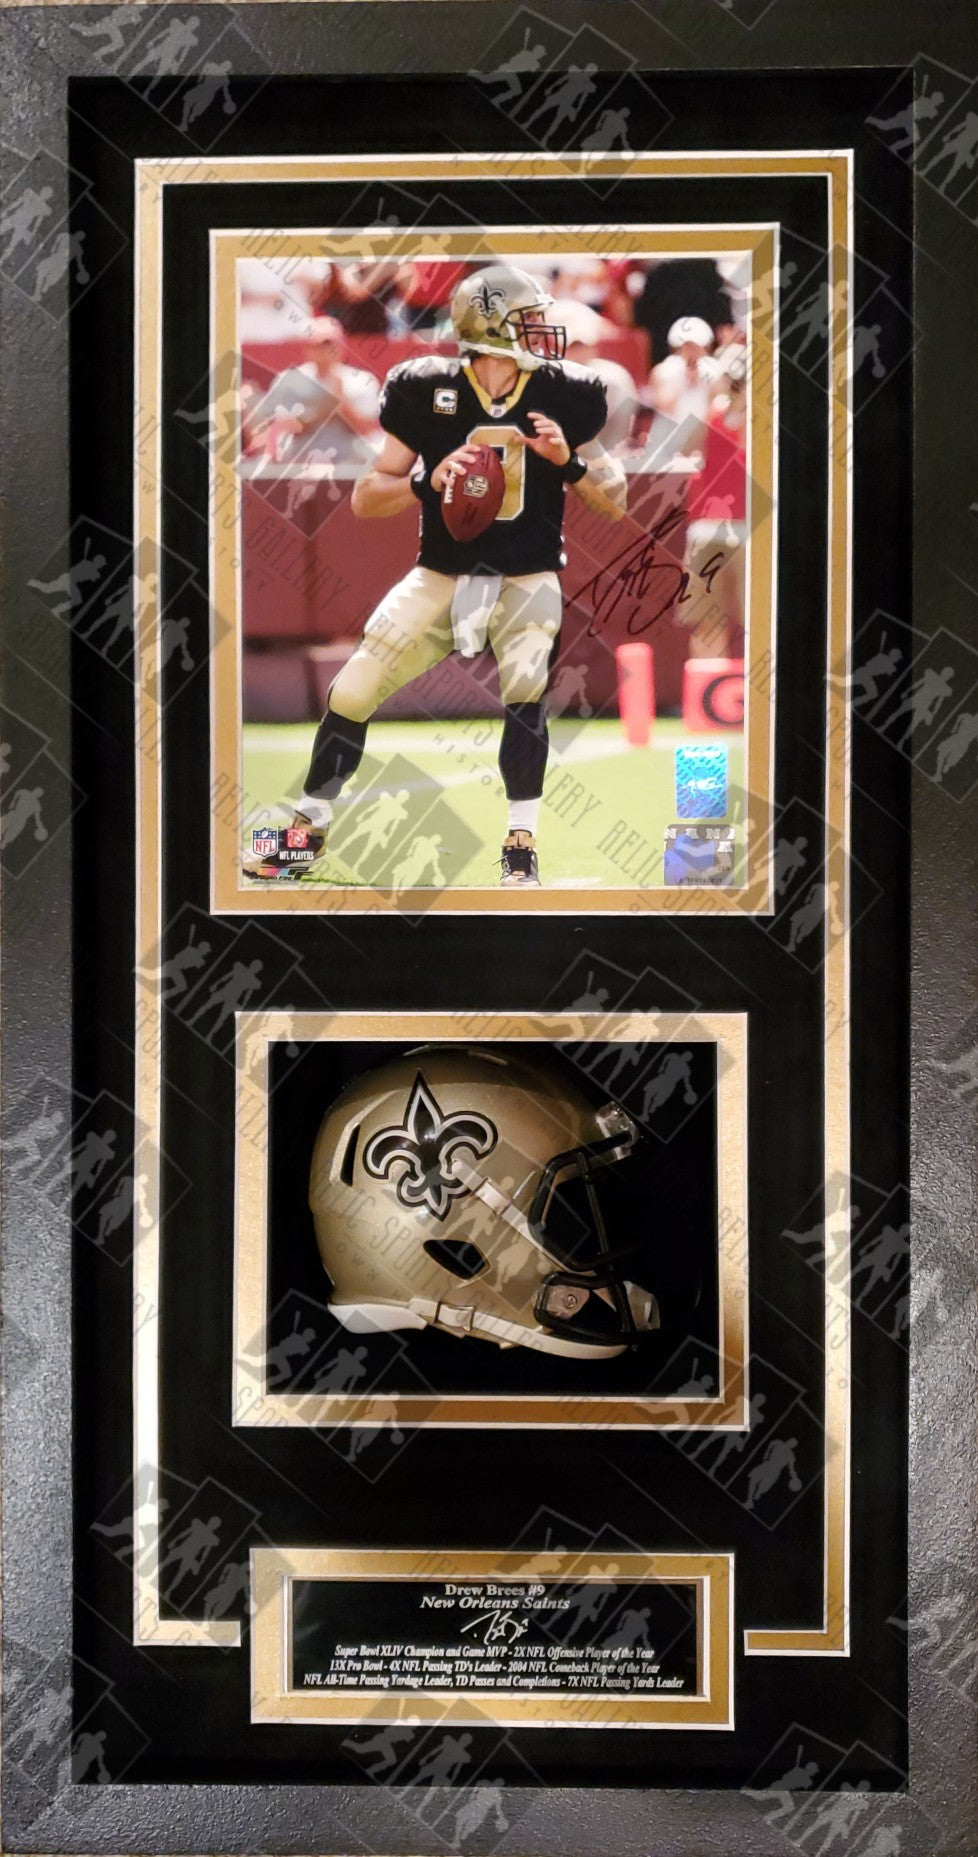 Drew Brees Autographed 8x10 Photo New Orleans Saints